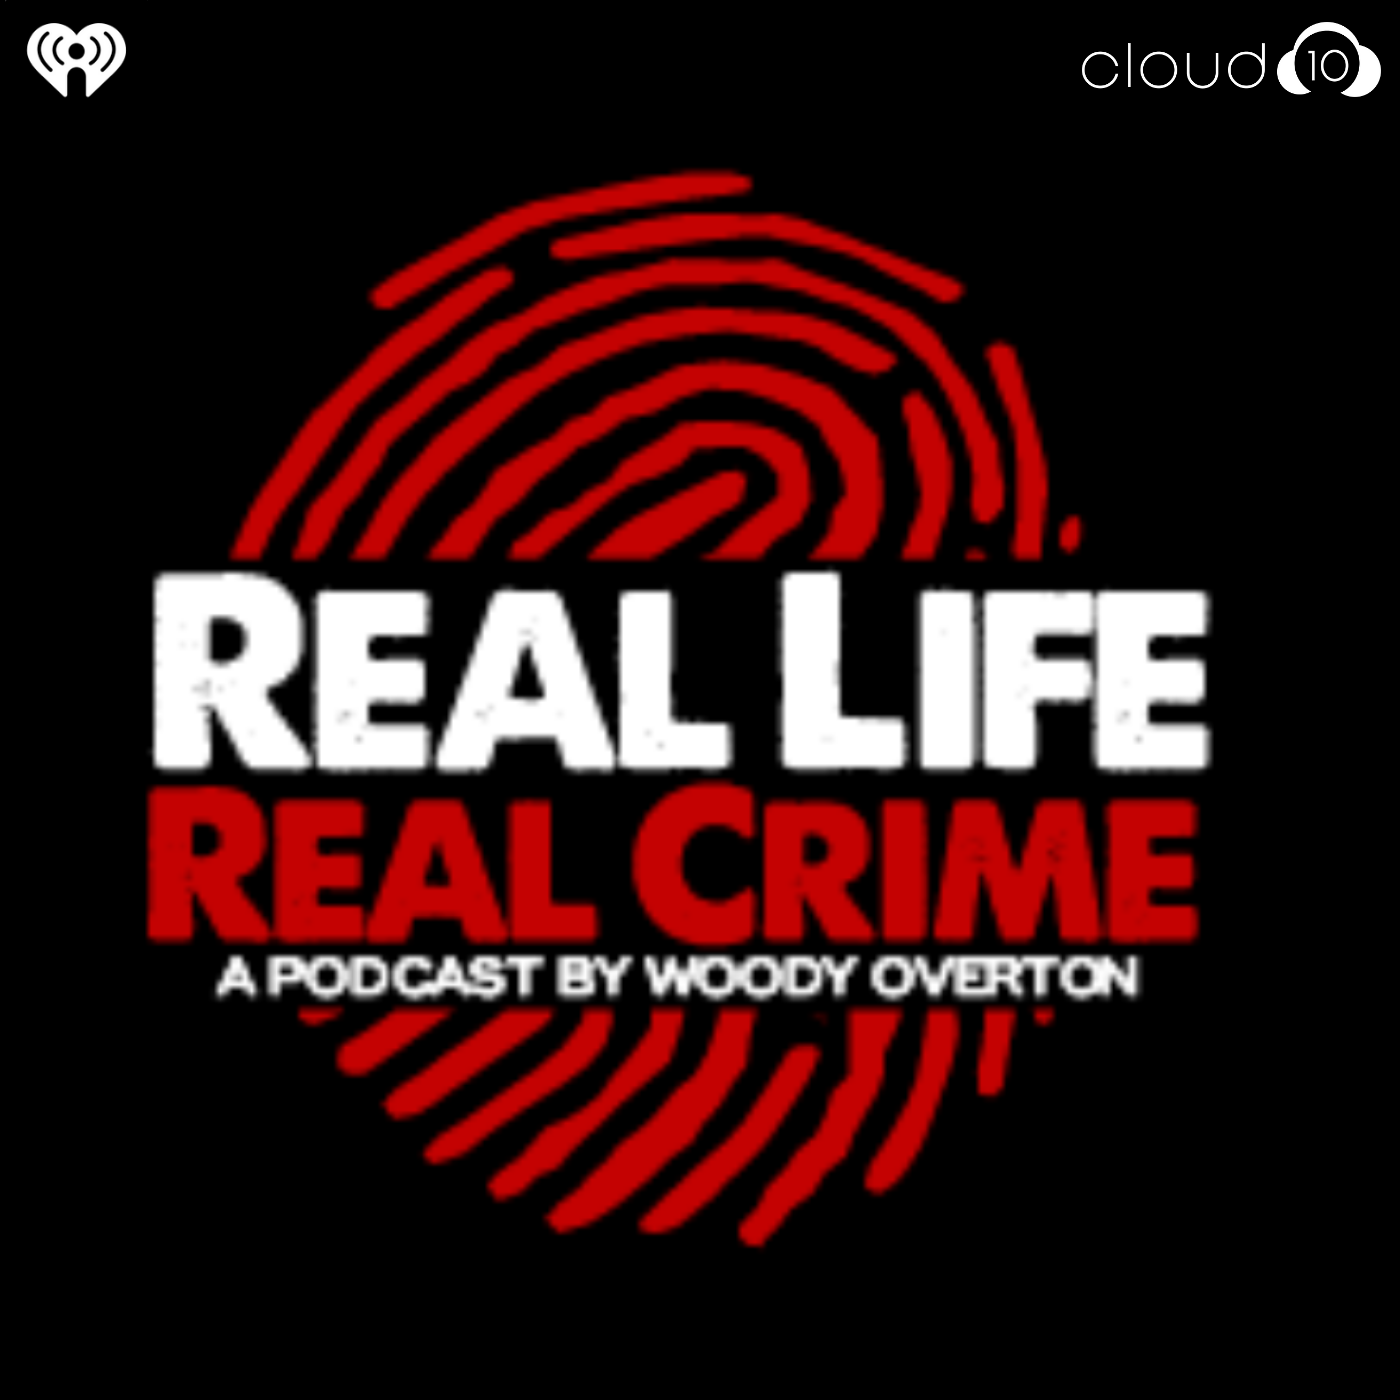 Real Life Real Crime podcast